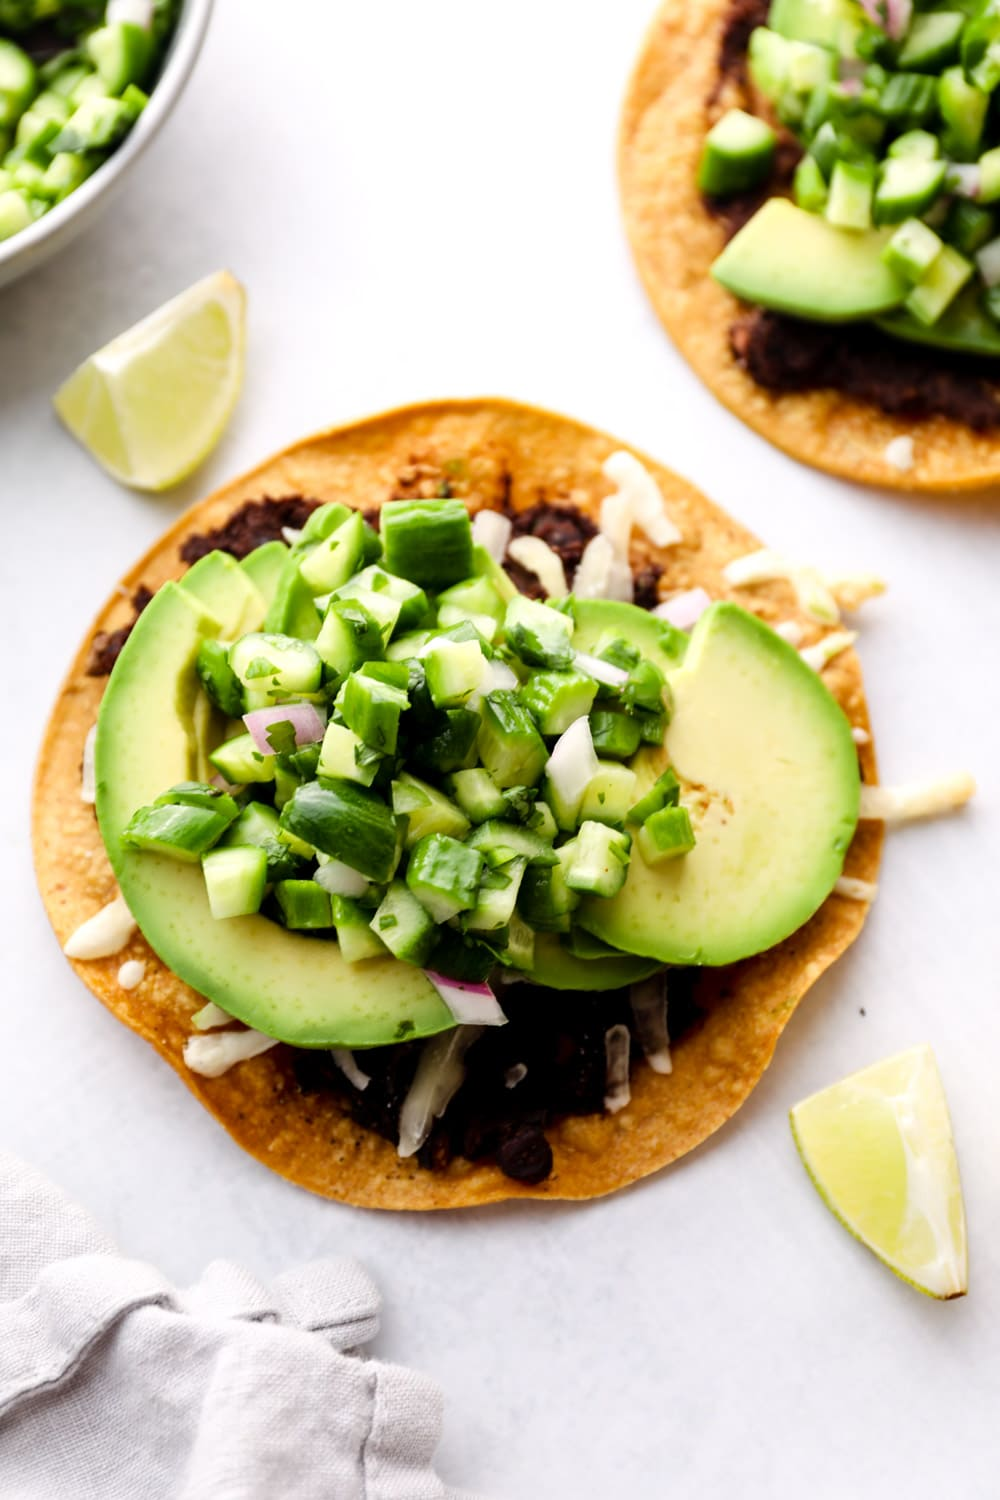 Avocado Tostada with vegan cheese, refried beans, and cucumber pico.